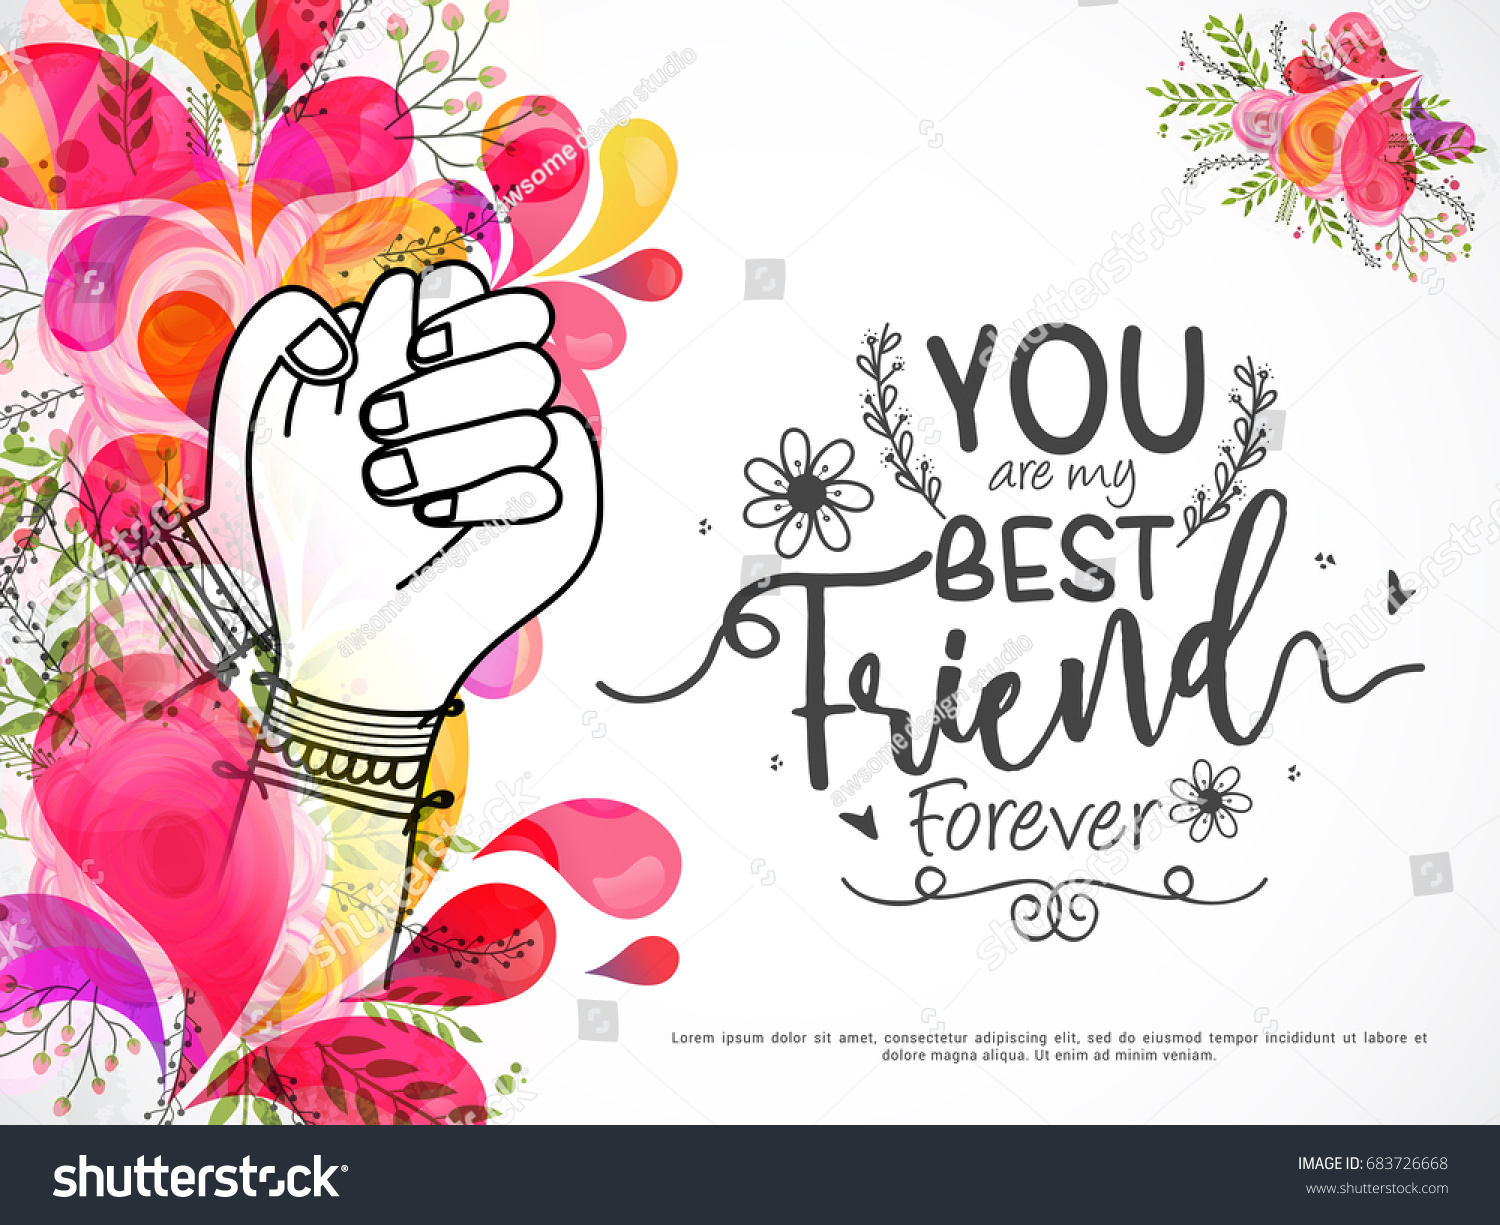 Illustration Holding Hands Promise Friends Forever Beautiful